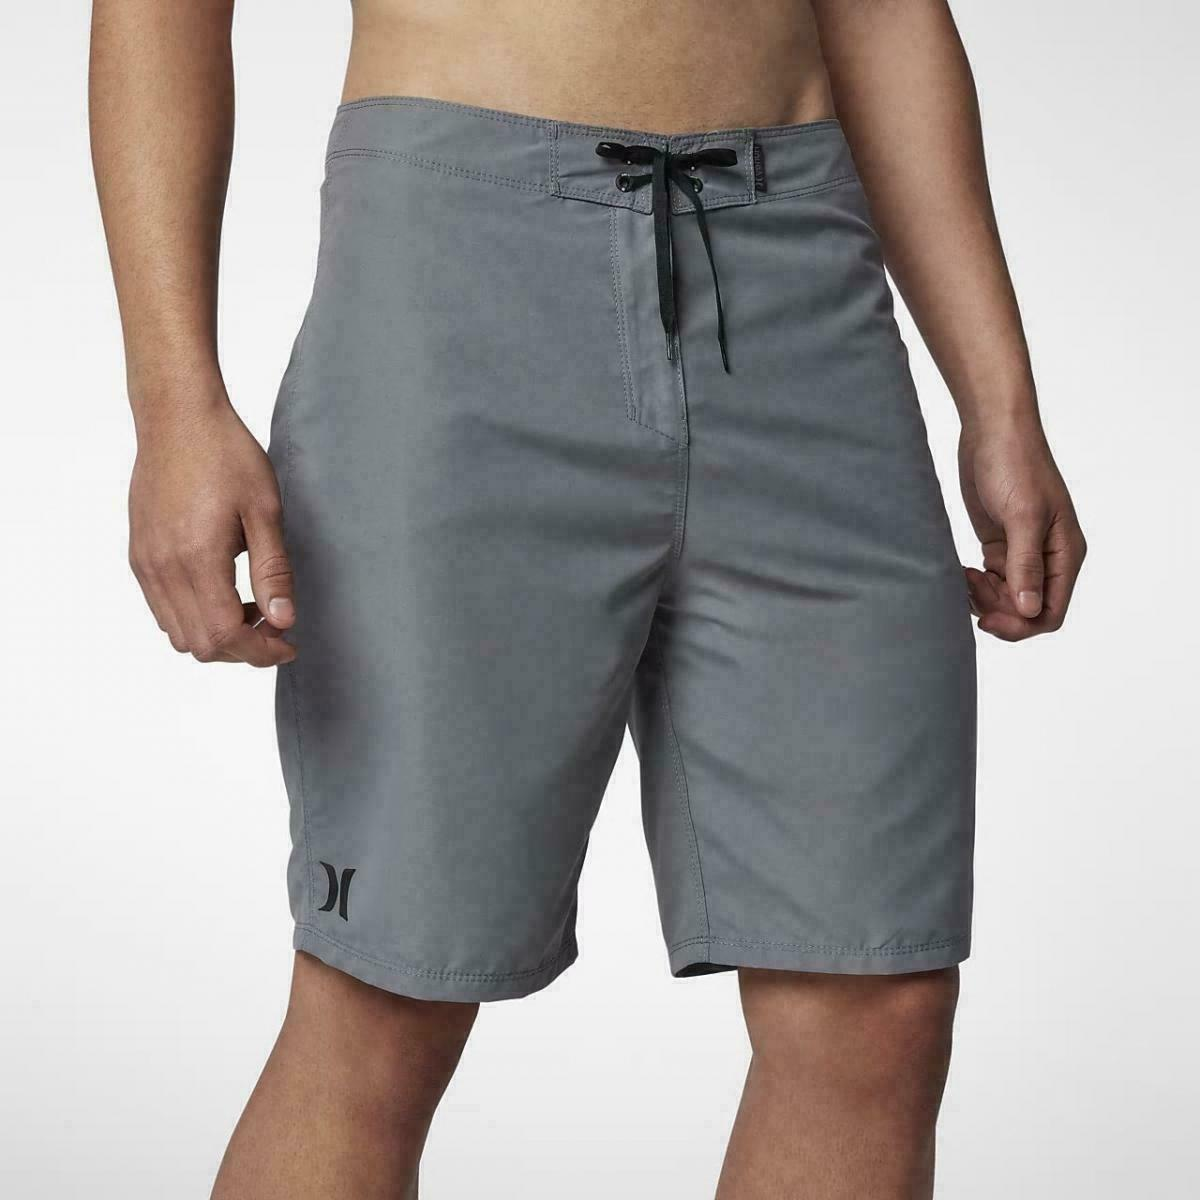 "Hurley One 2.0 21"" Board Shorts Men's"